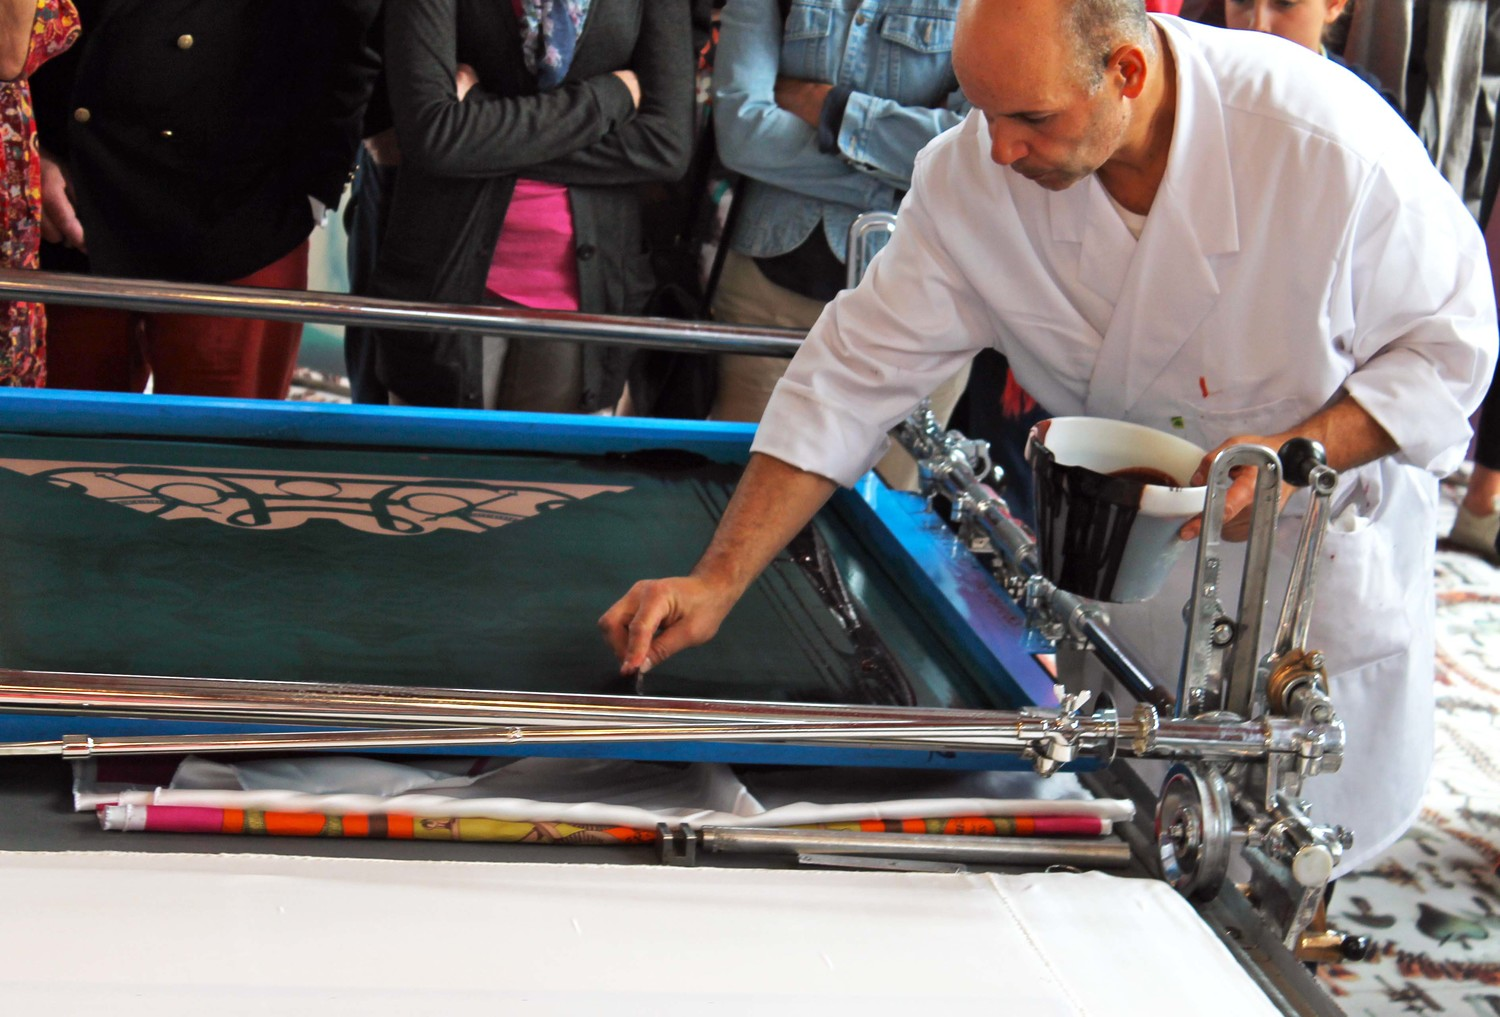 Preparing the screens for the layers of ink used on the scarves.